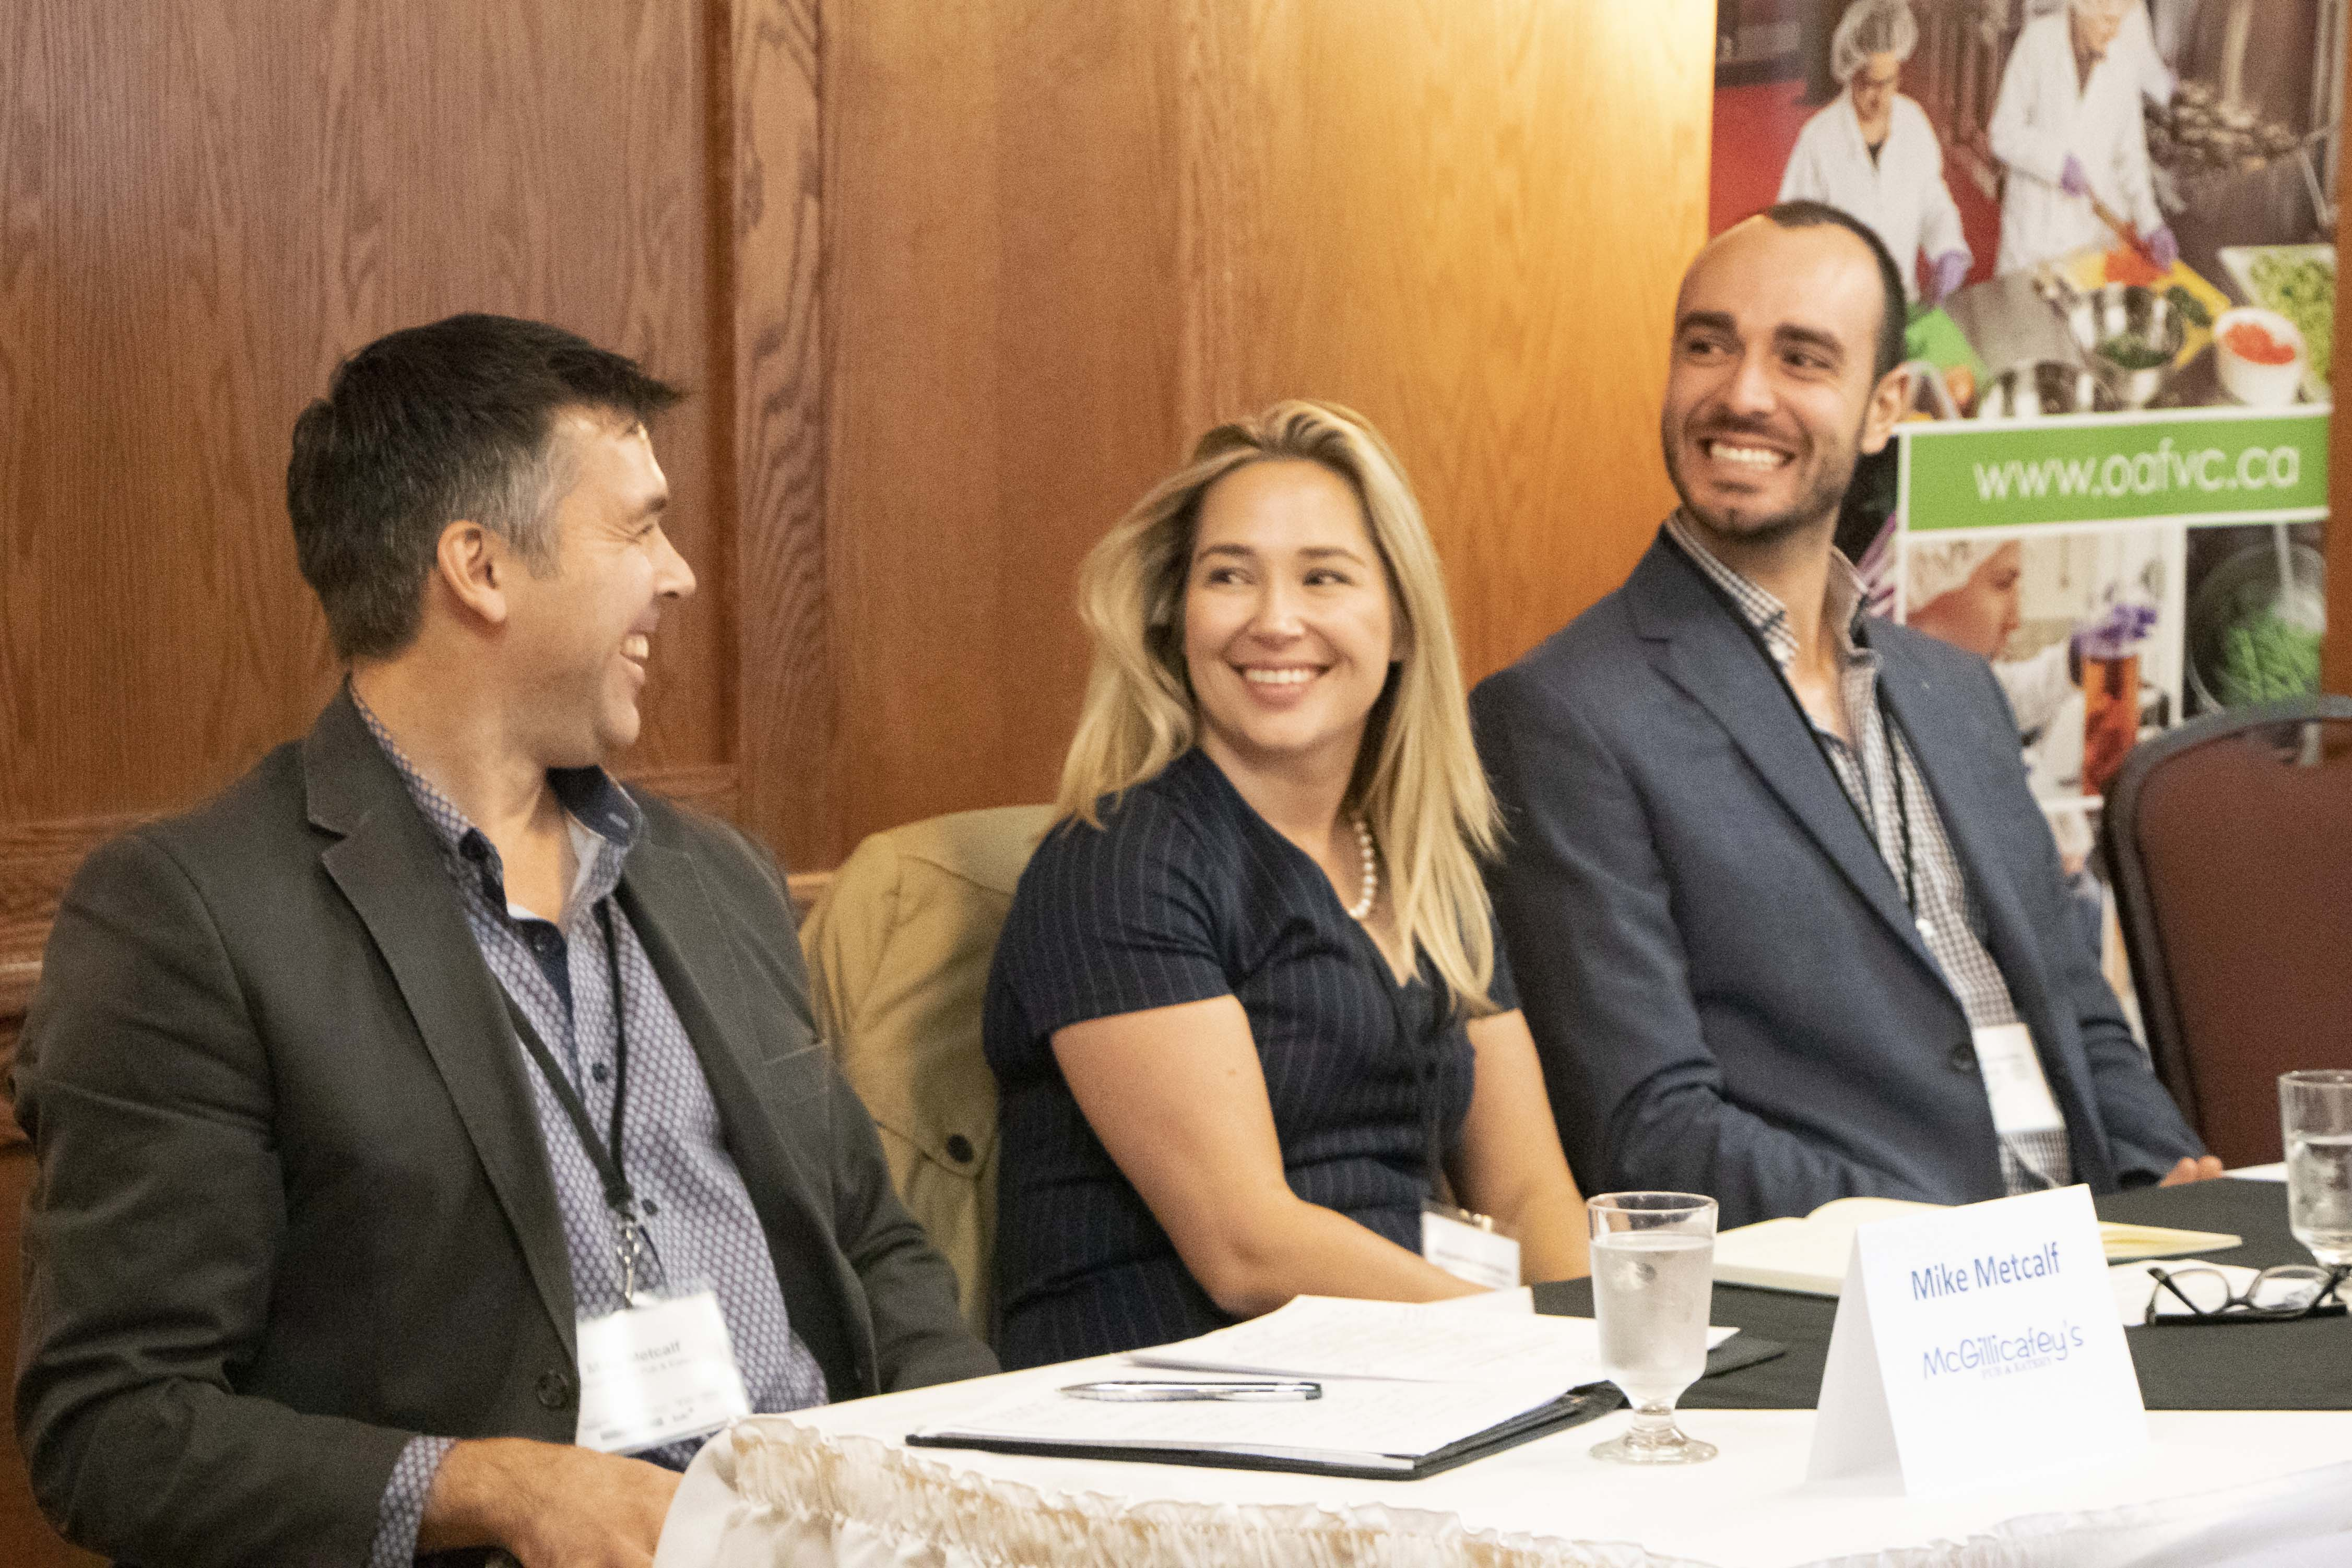 Three small business panelists smile at each other during session